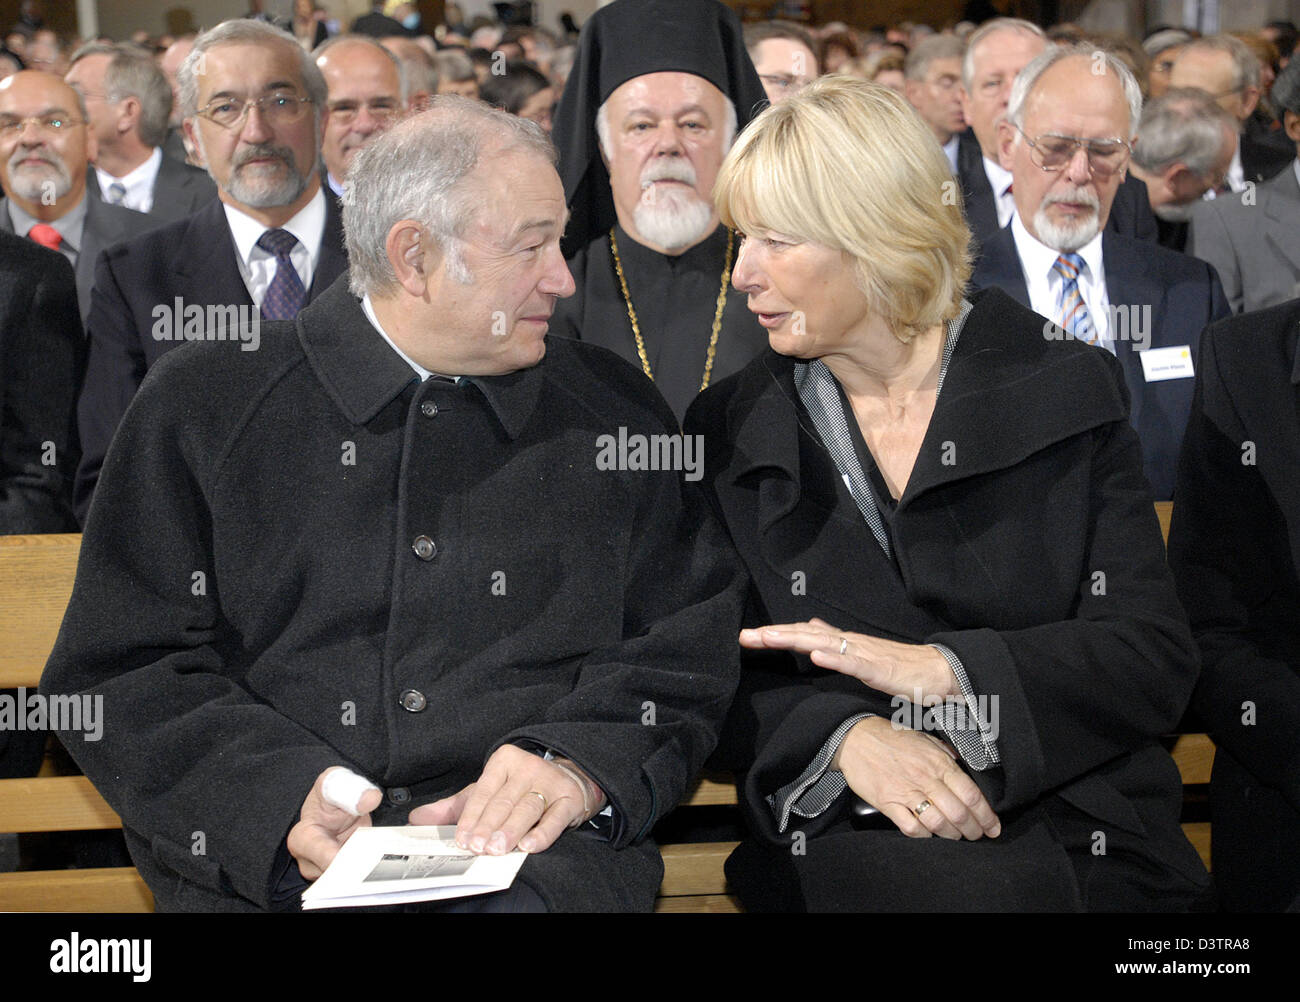 The President of the synod of the Evangelical Church in Germany (EKD) Barbara Rinke (R) chats with Bavarian Minister - Stock Image